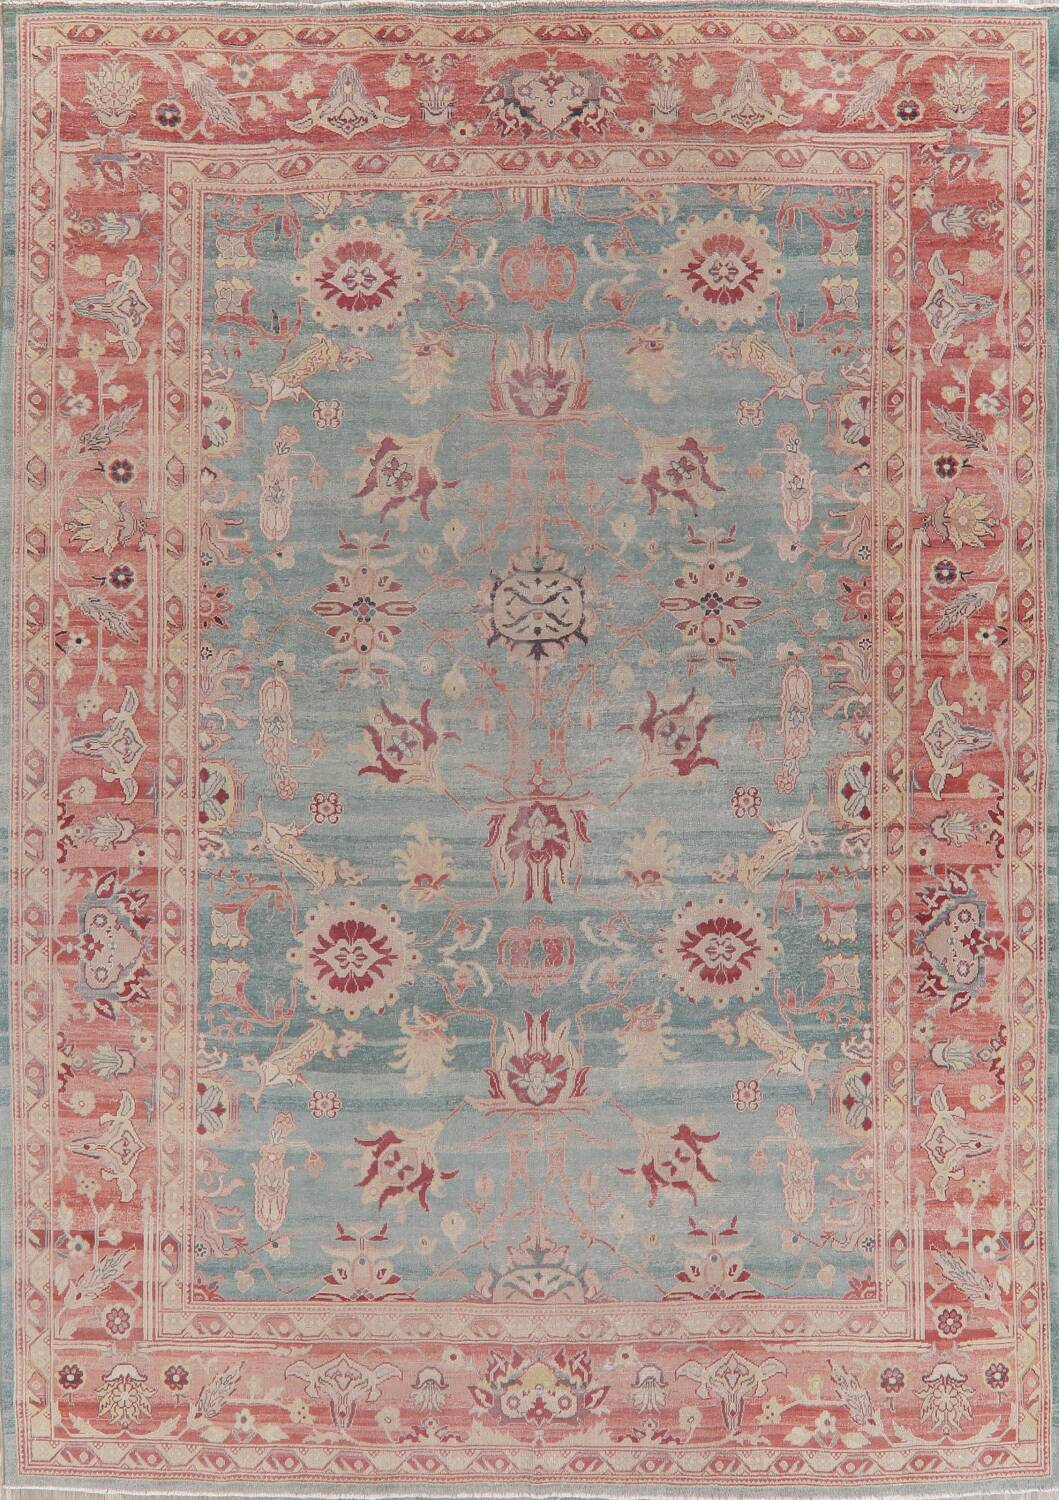 Vegetable Dye Oushak Egyptian Area Rug 9x12 image 1